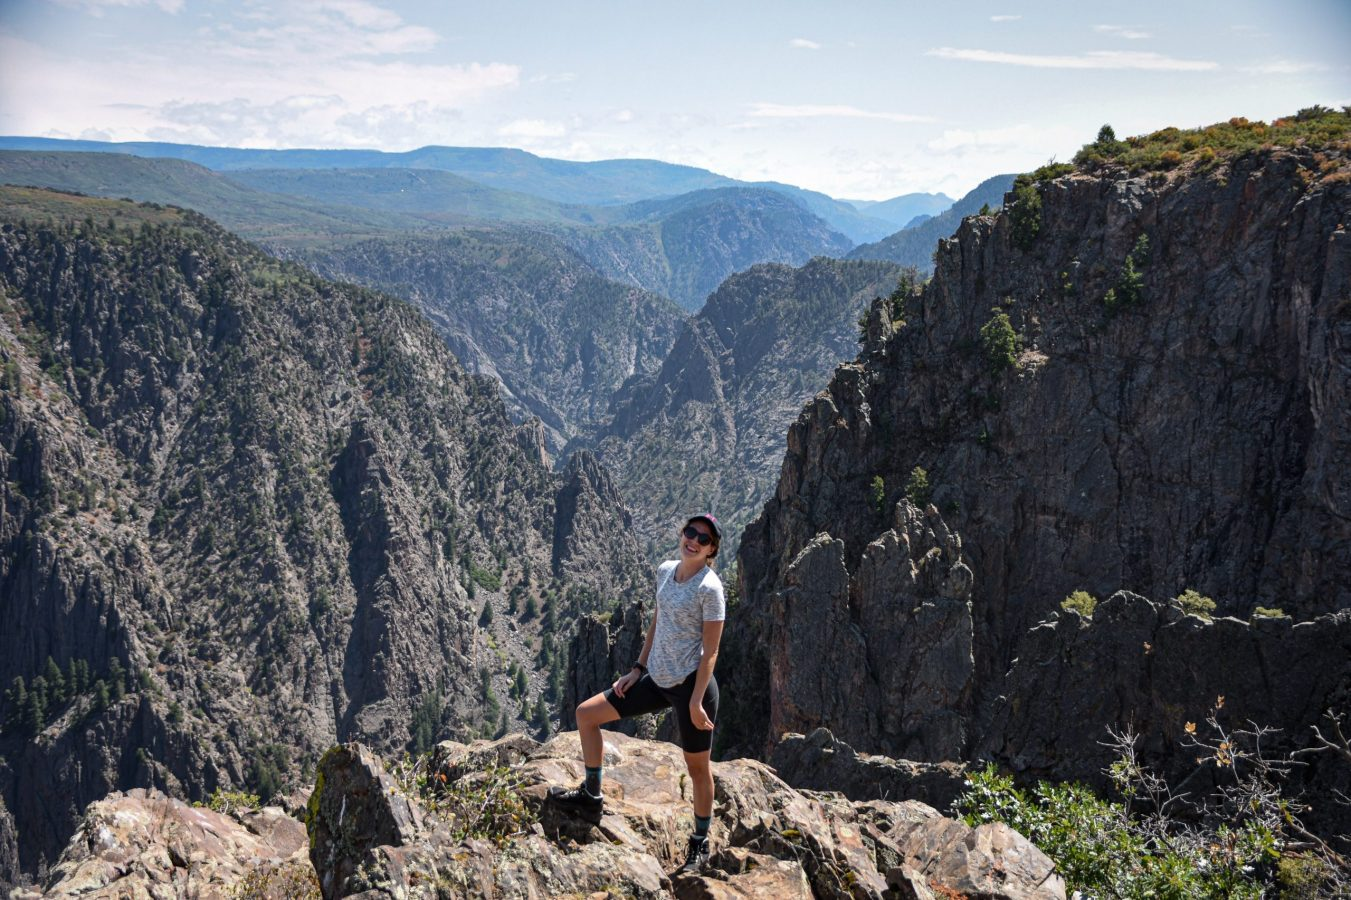 Sarah Proper at Black Canyon of the Gunnison National Park, Colorado